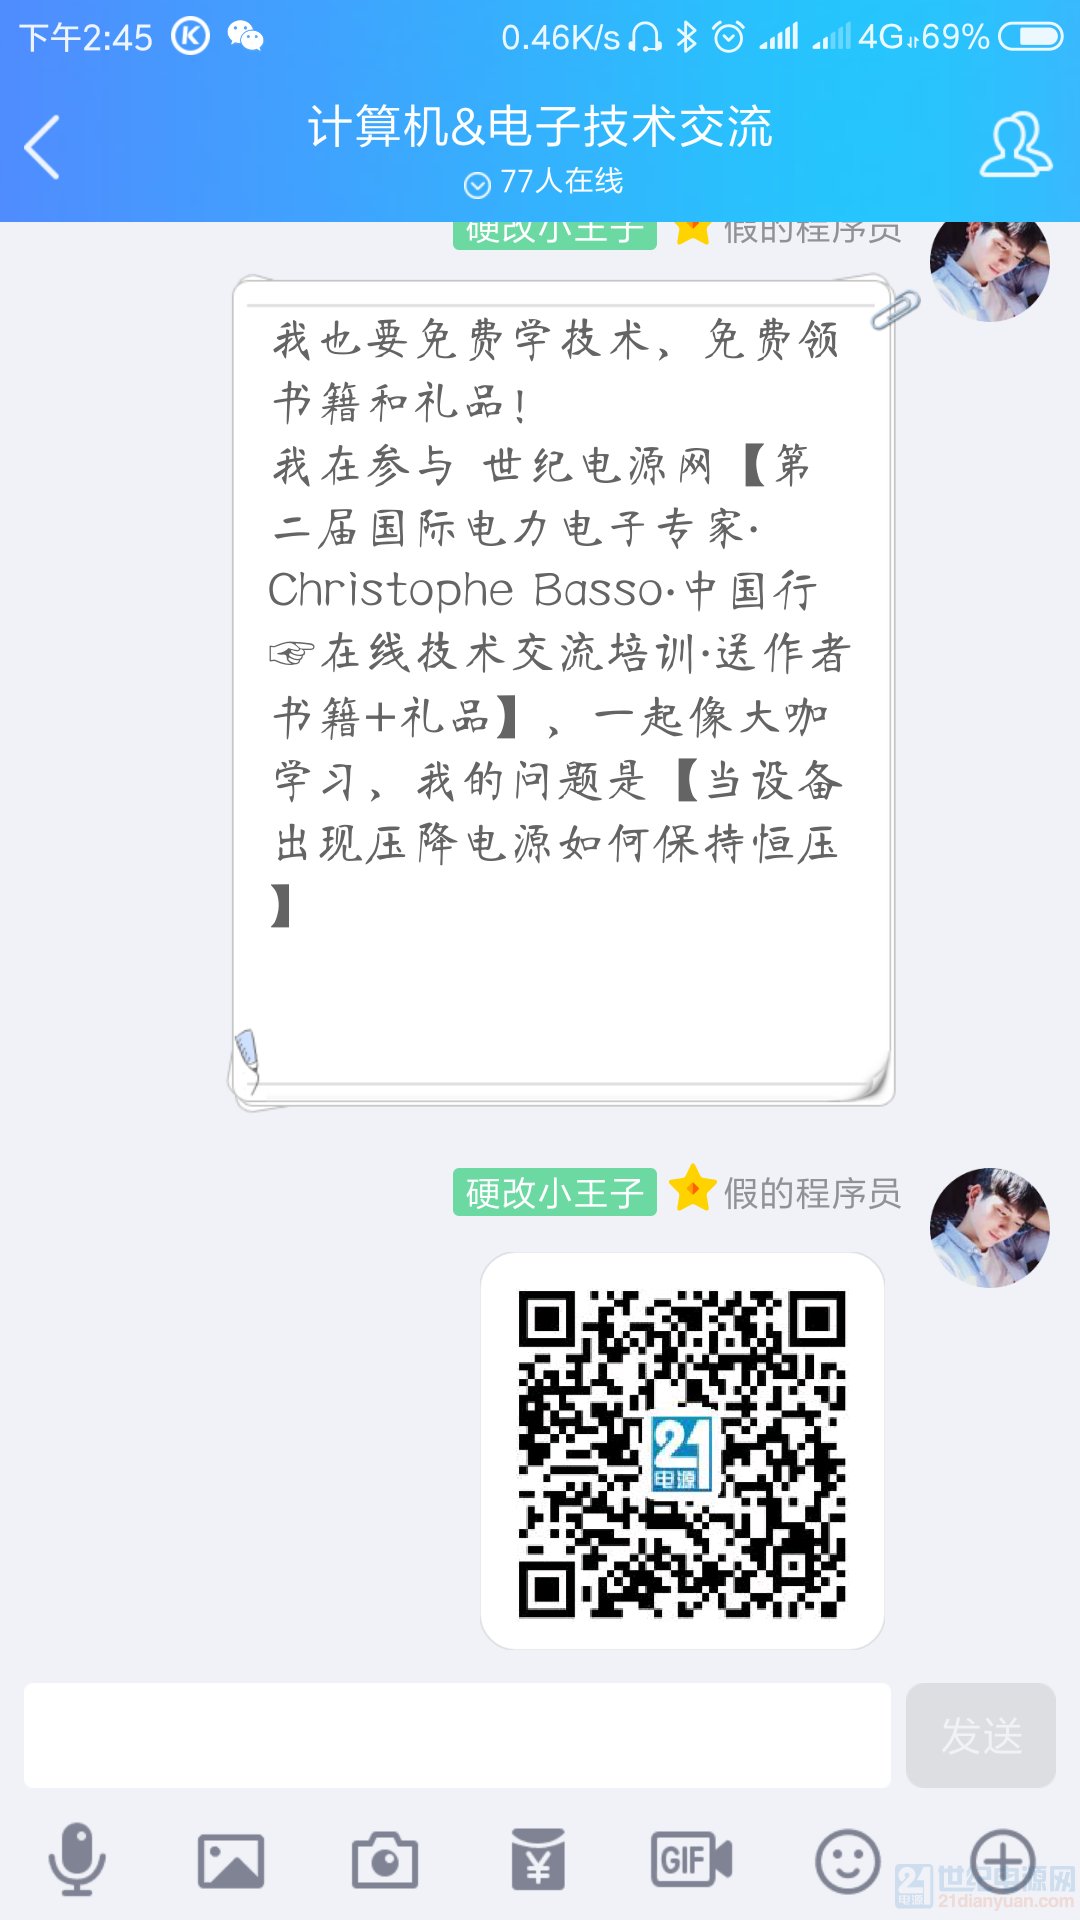 Screenshot_2018-10-12-14-45-27-652_com.tencent.mobileqq.png